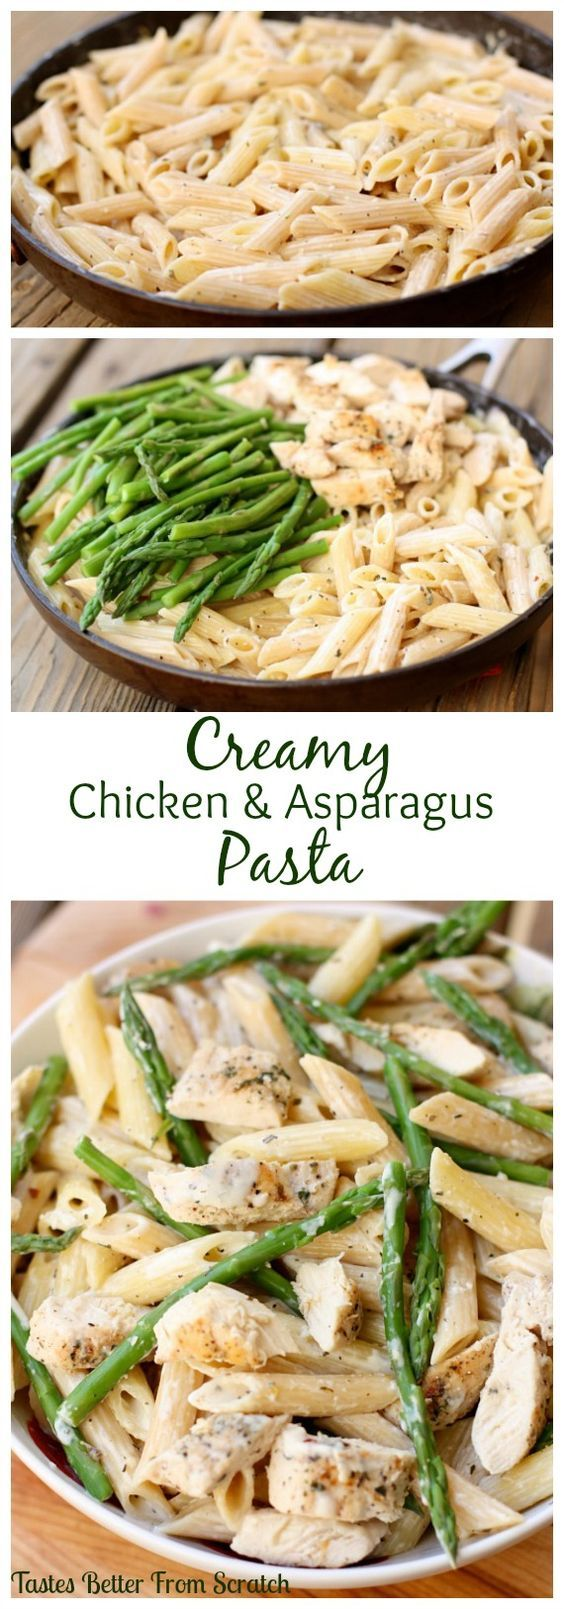 Creamy Chicken and Asparagus Pasta recipe on MyRecipeMagic.com #30minutemeals #pasta